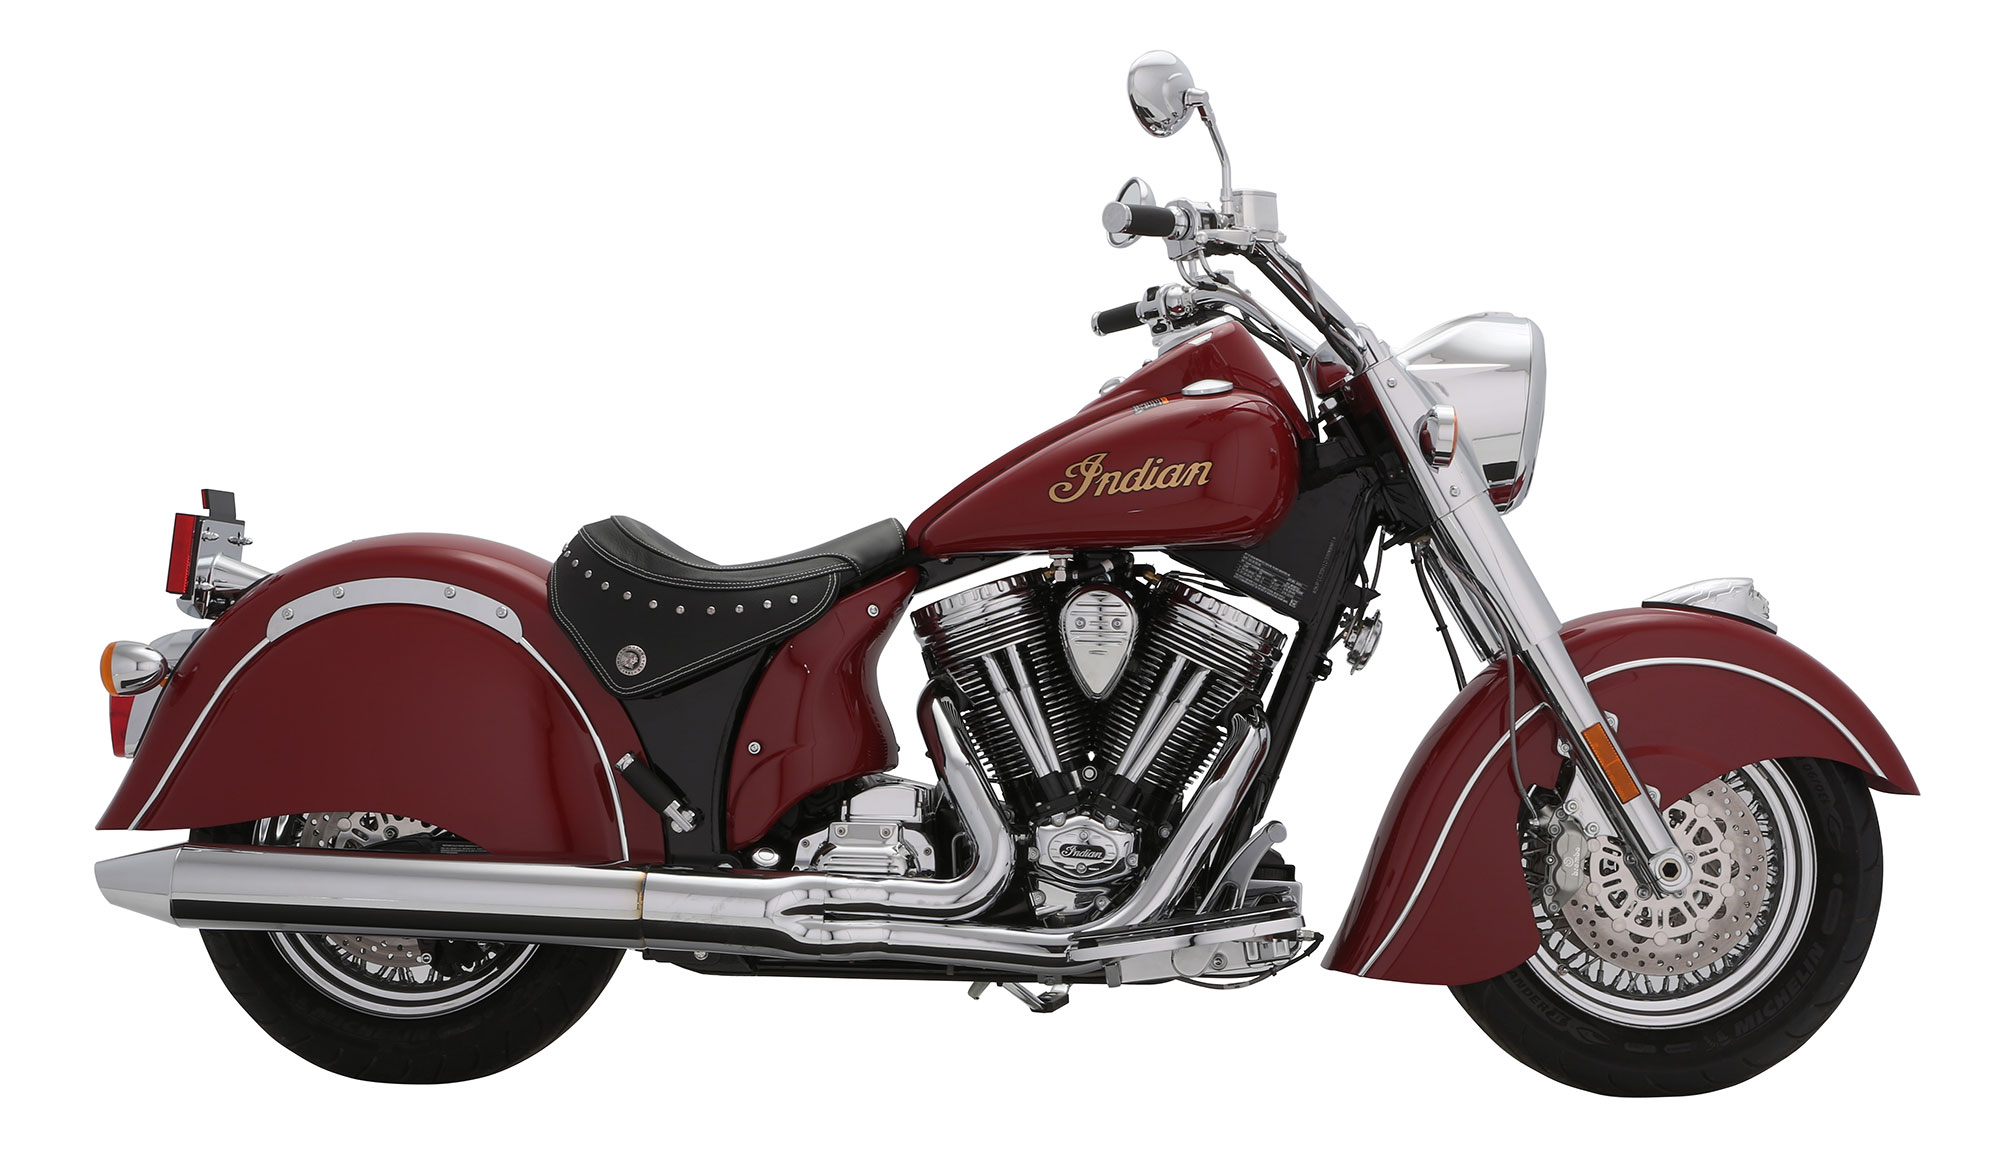 2013 Indian Chief Classic Pictures, Photos, Wallpapers